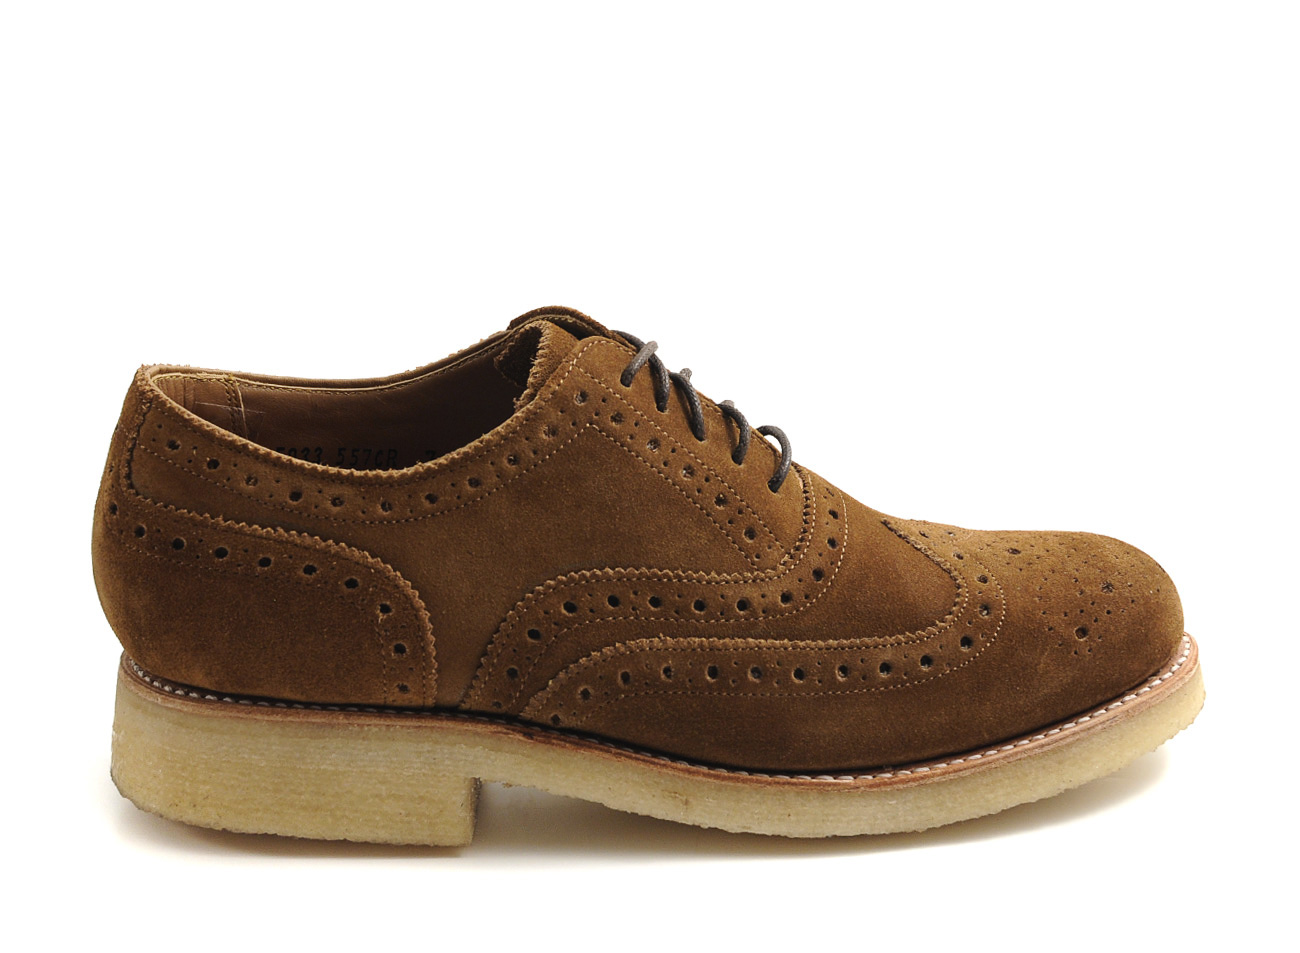 Herring Shoes are specialists in high quality men's shoes. Our list of suppliers include Church's, Loake, Barker, Cheaney, Alfred Sargent, Trickers, Sebago, Wildsmith, Saphir and our own Herring shoes. Here you can find brogues, monk shoes, oxfords, boots and many other men's shoe styles/5(K).